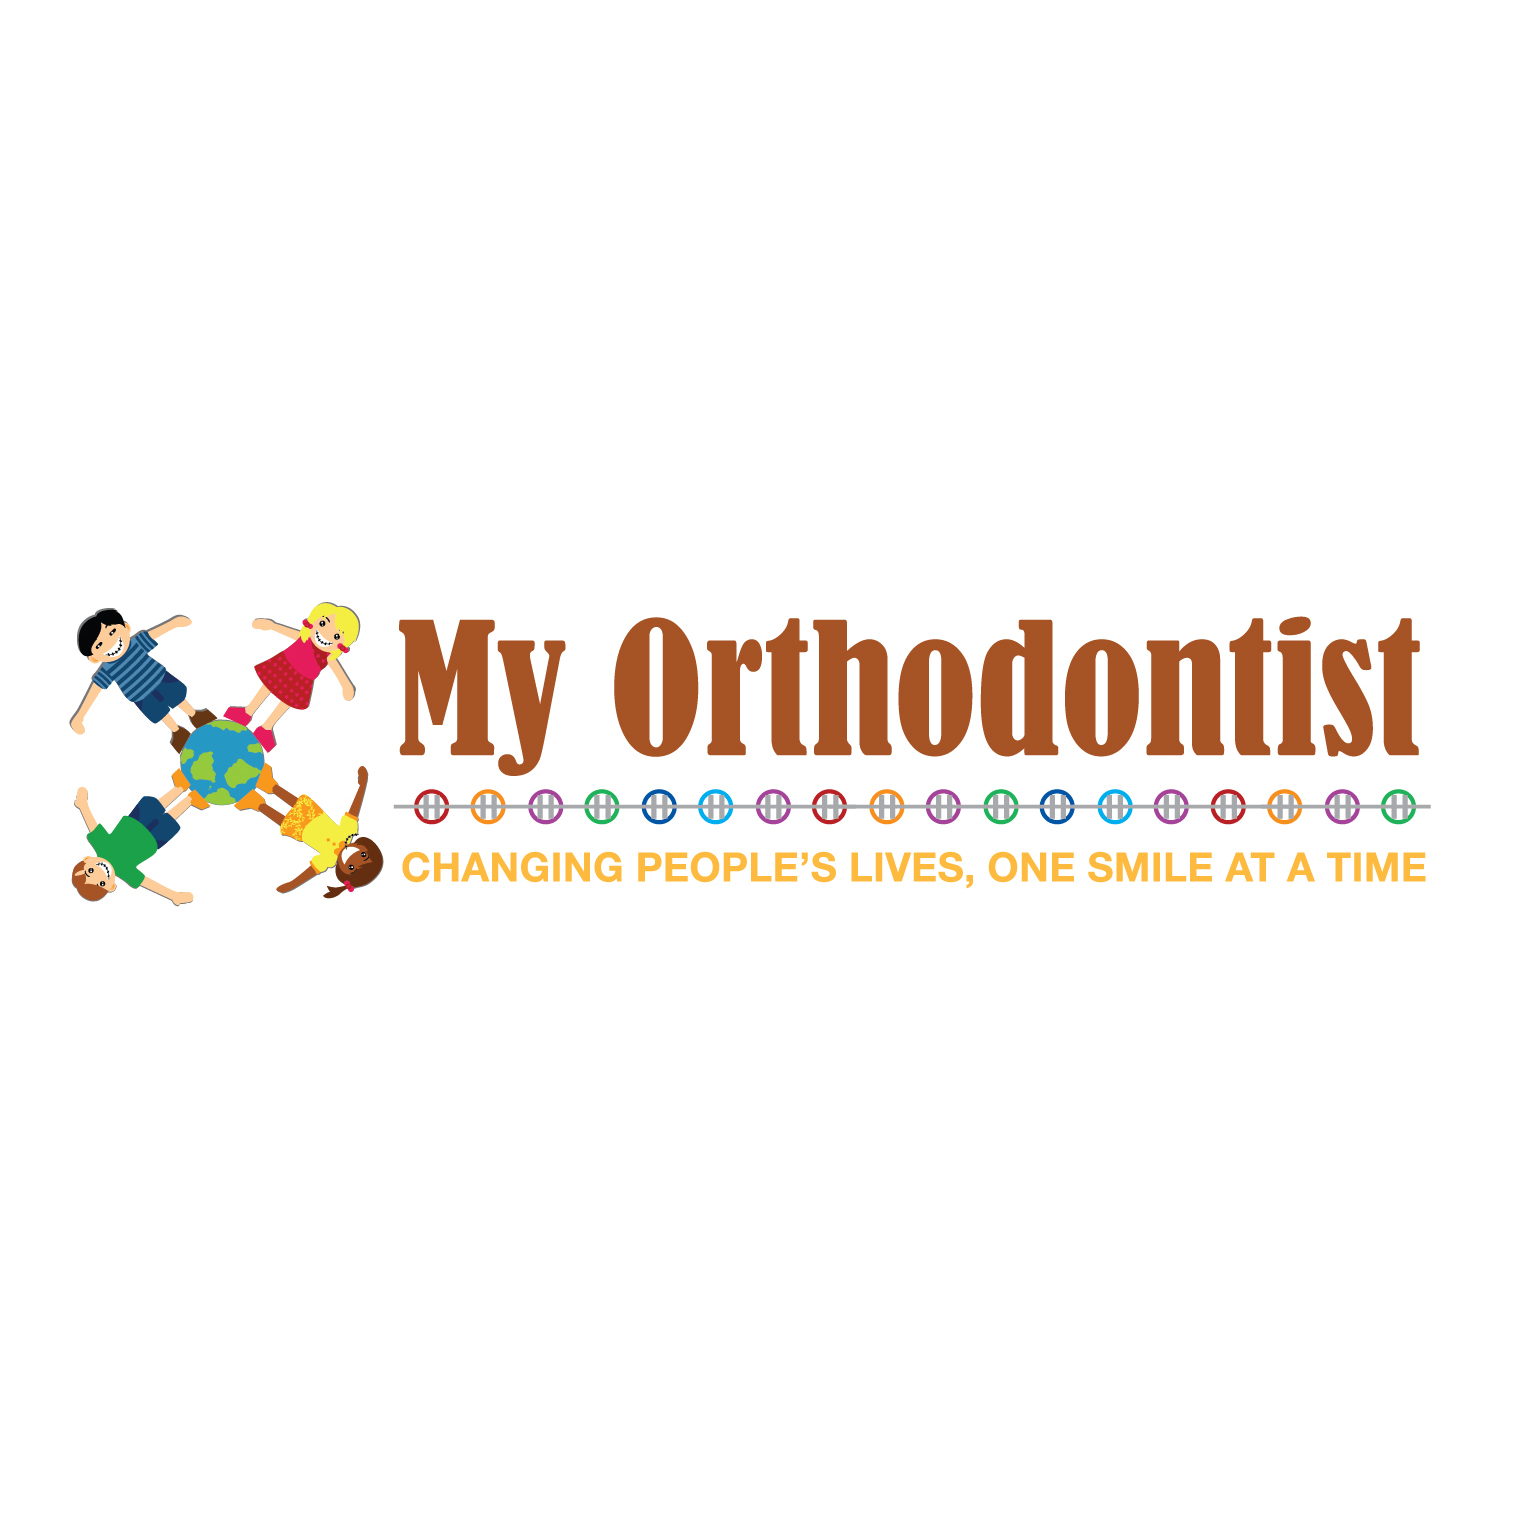 My Orthodontist